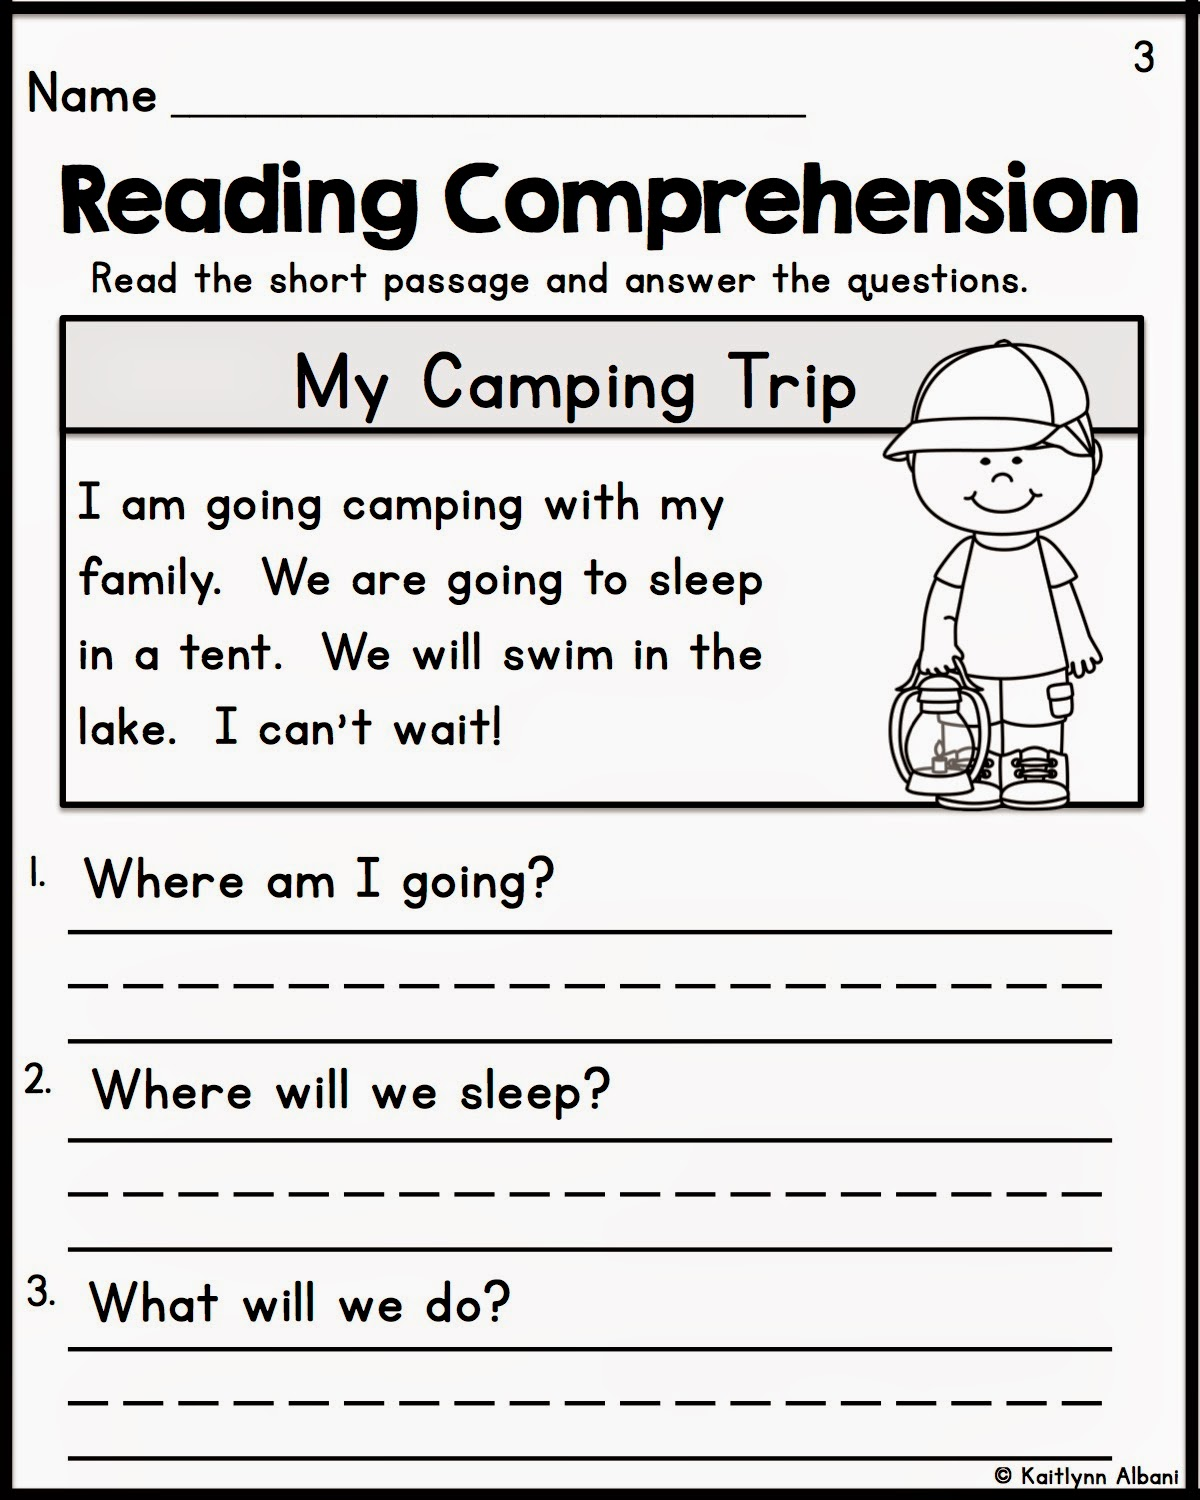 Worksheet Reading Comprehension Packets 2nd grade reading comprehension worksheets multiple choice owls the best of teacher entrepreneurs ii kindergarten reading